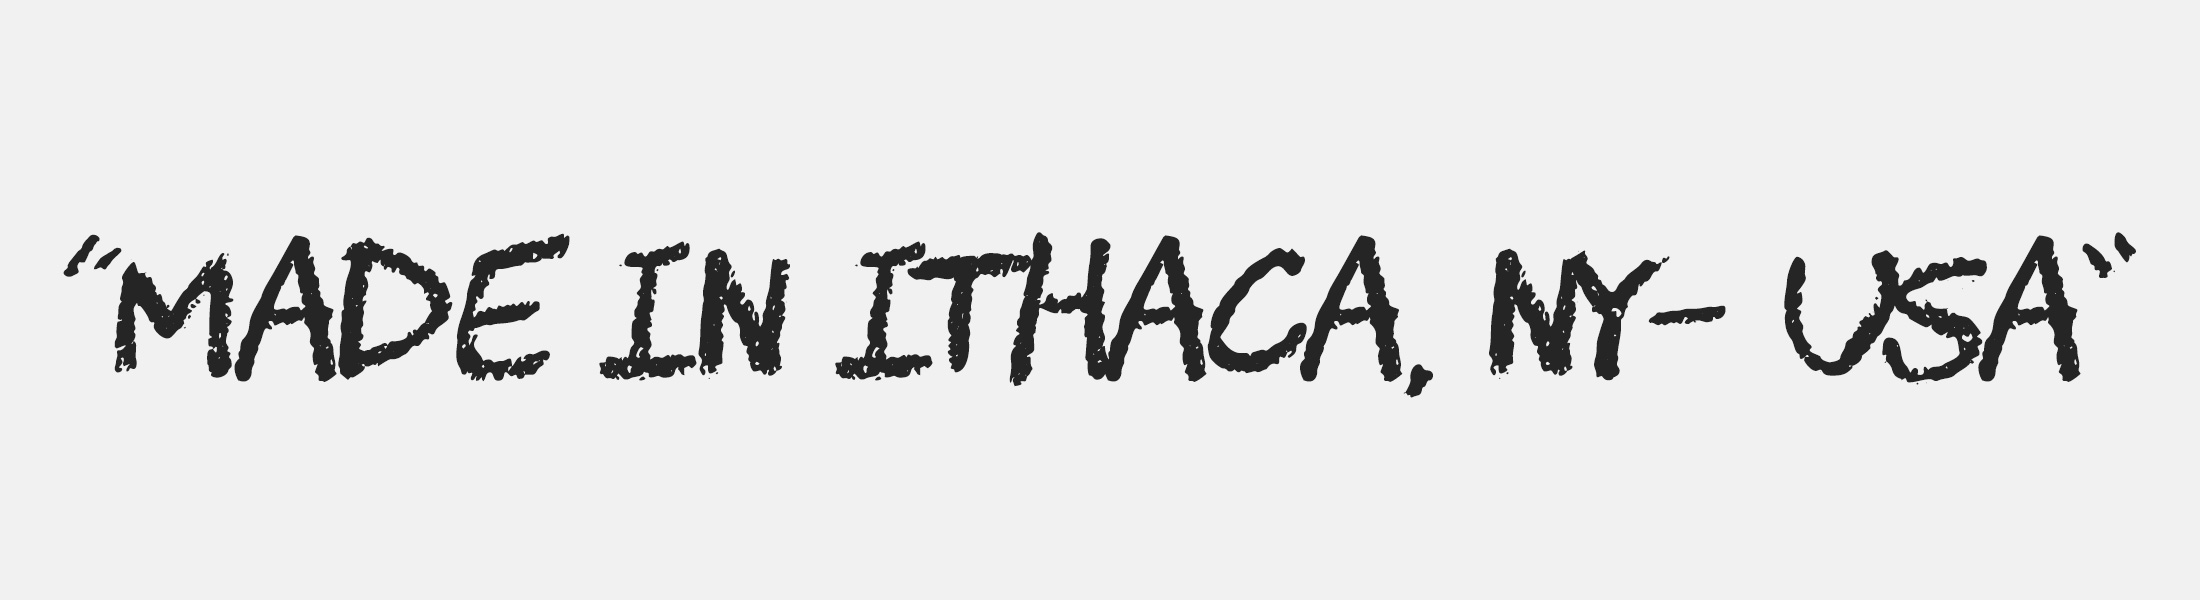 chawp-ithaca